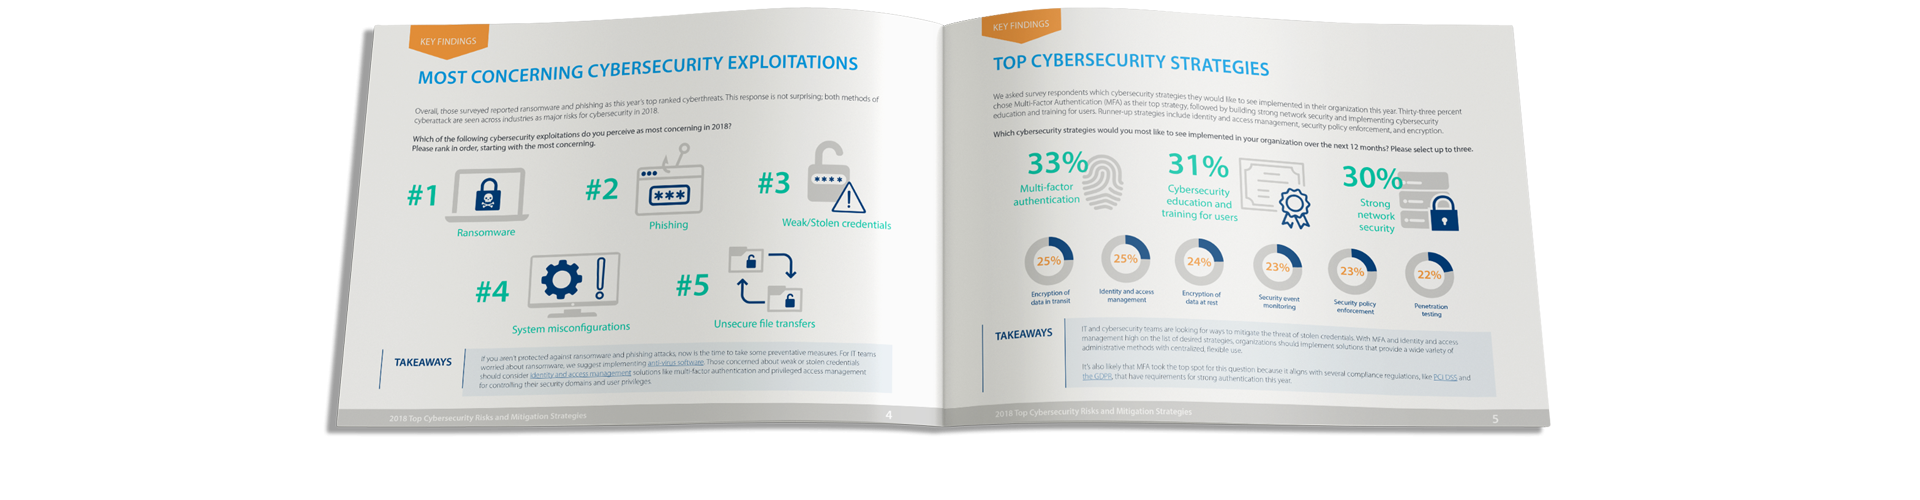 2018 Cybersecurity Report